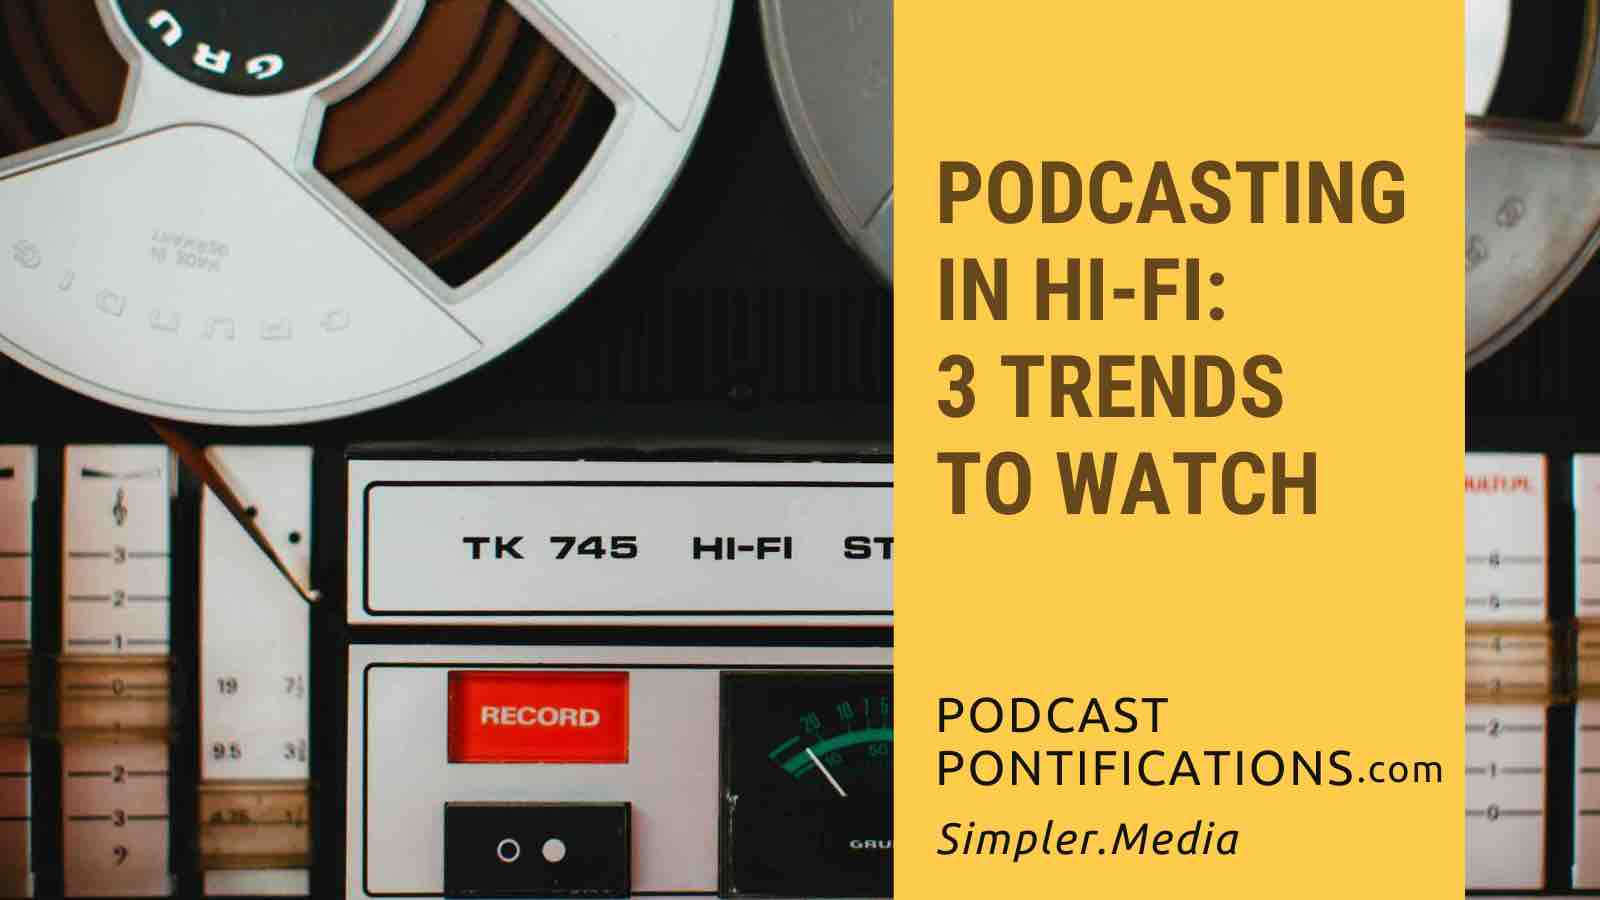 Podcasting In Hi-Fi: 3 Trends To Watch